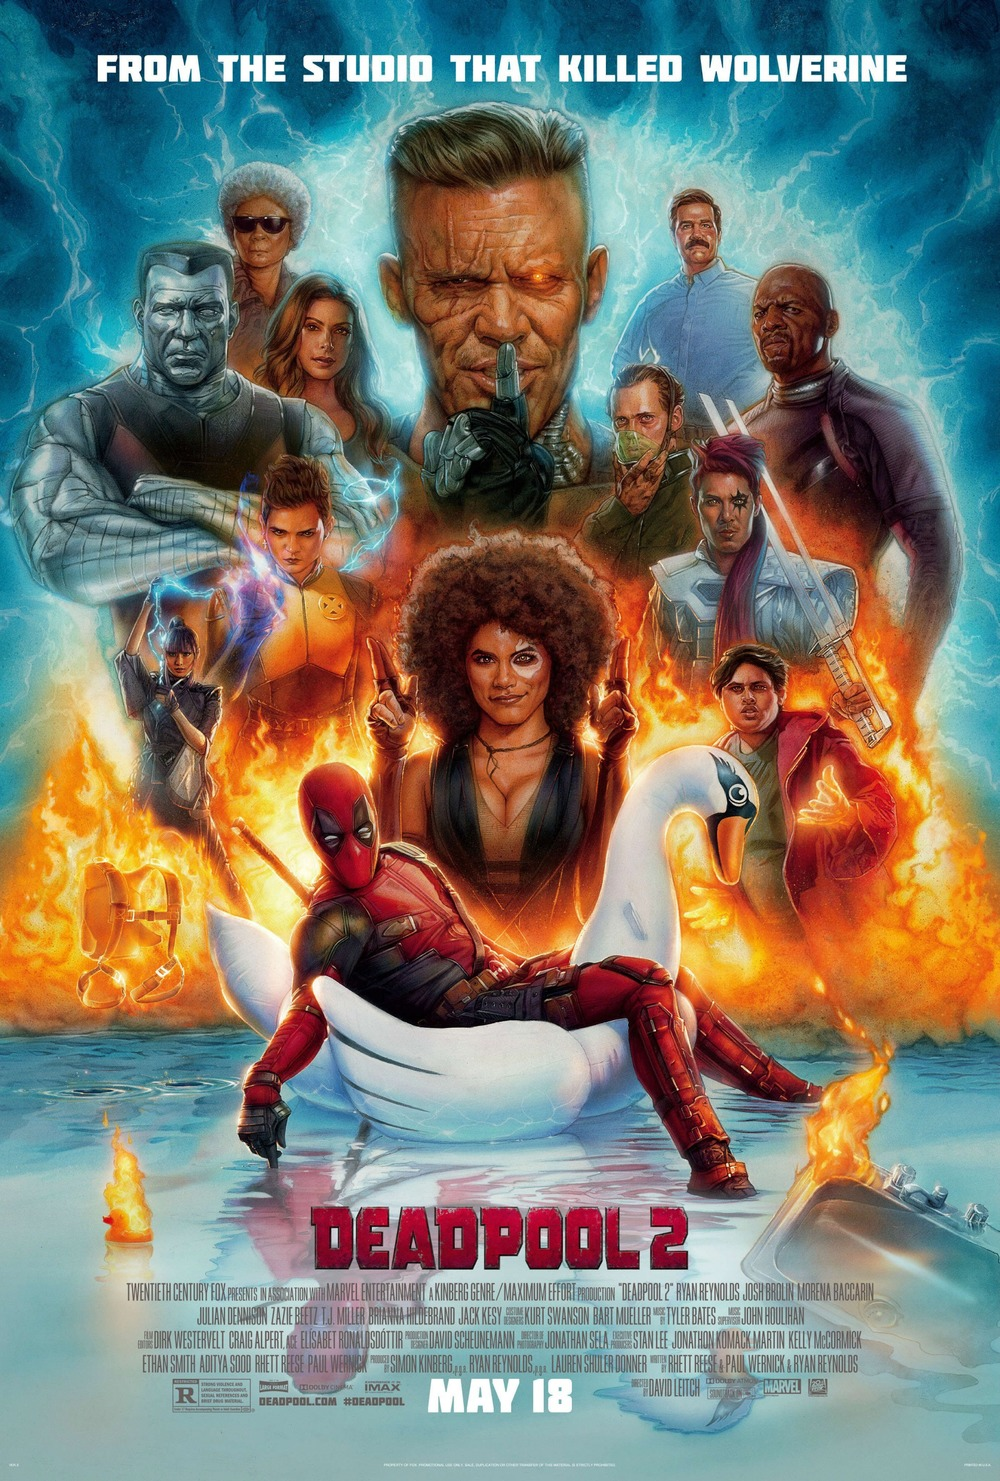 Deadpool release date in Melbourne